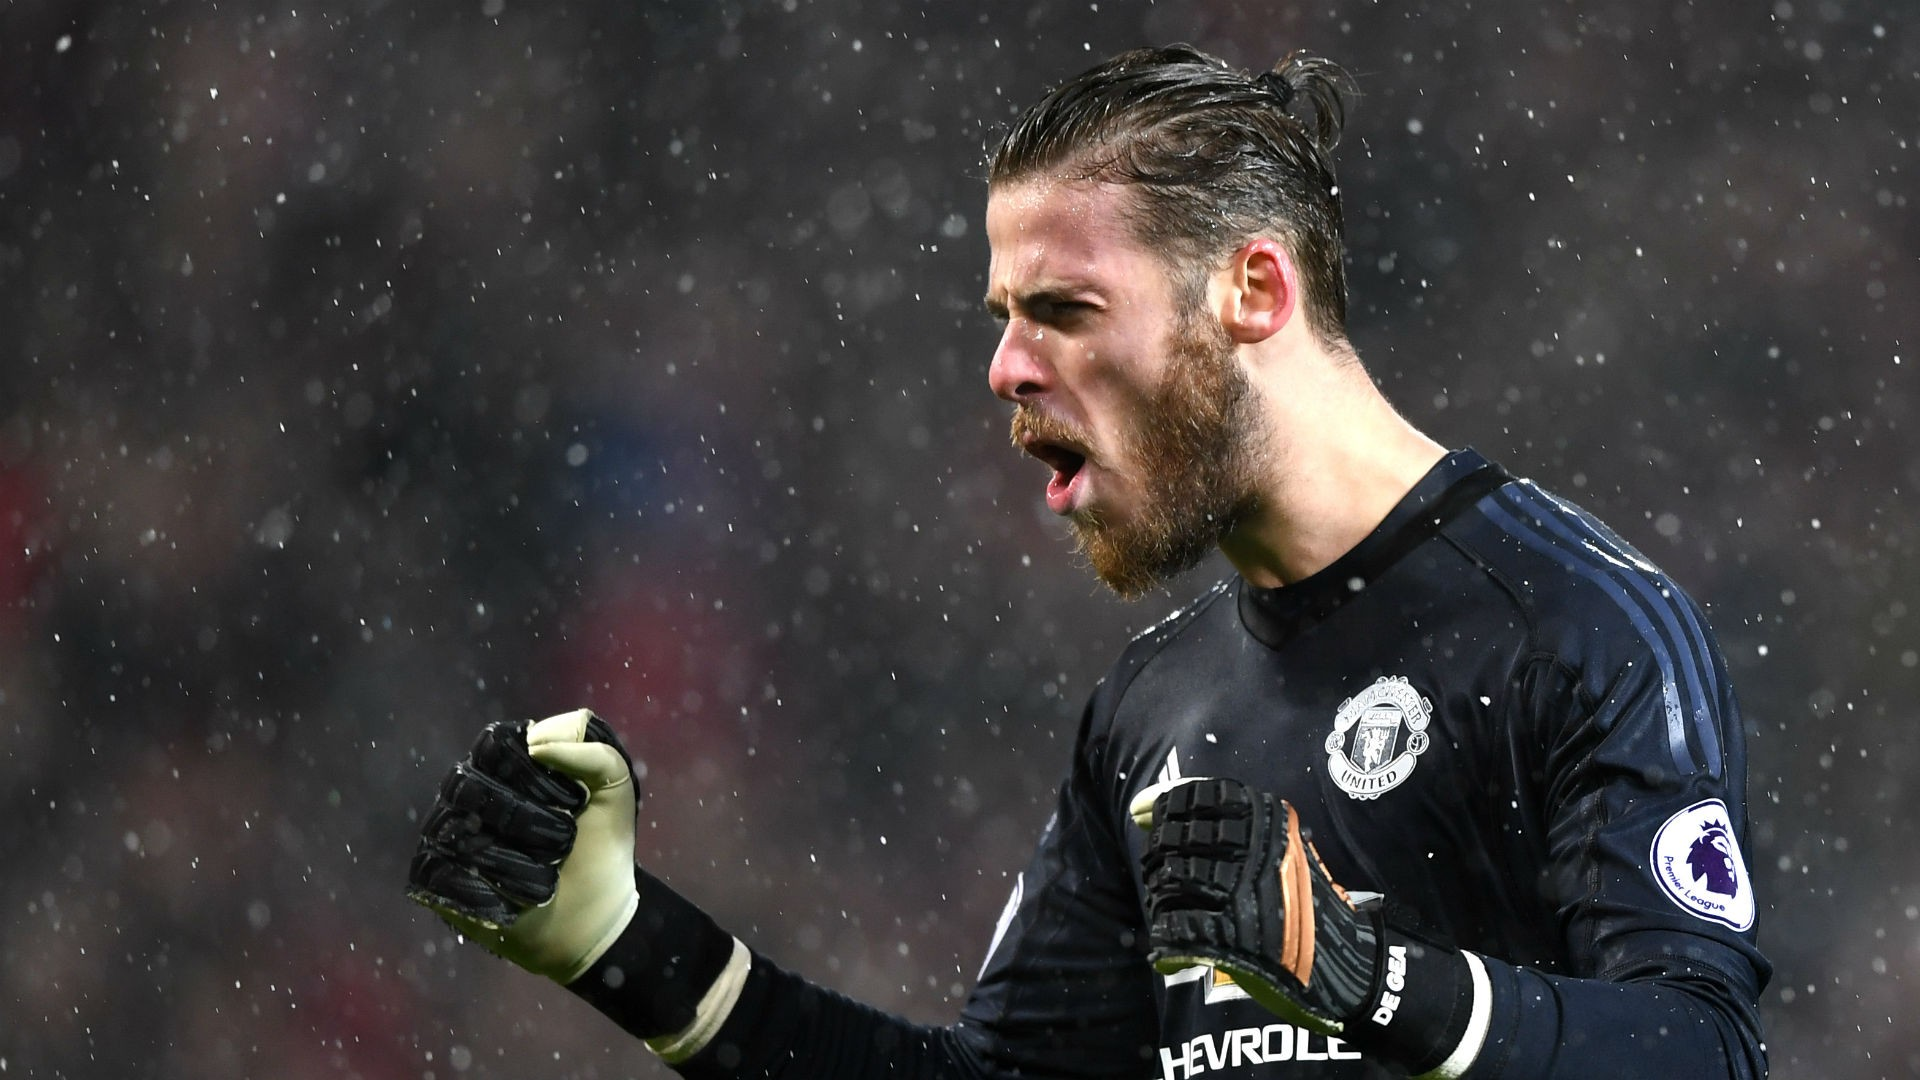 https://images.performgroup.com/di/library/GOAL/d9/6c/david-de-gea-manchester-united-premier-league_j1w8t1dro1ix1nvfxk91amqi2.jpg?t=1373746968&quality=90&w=0&h=1260